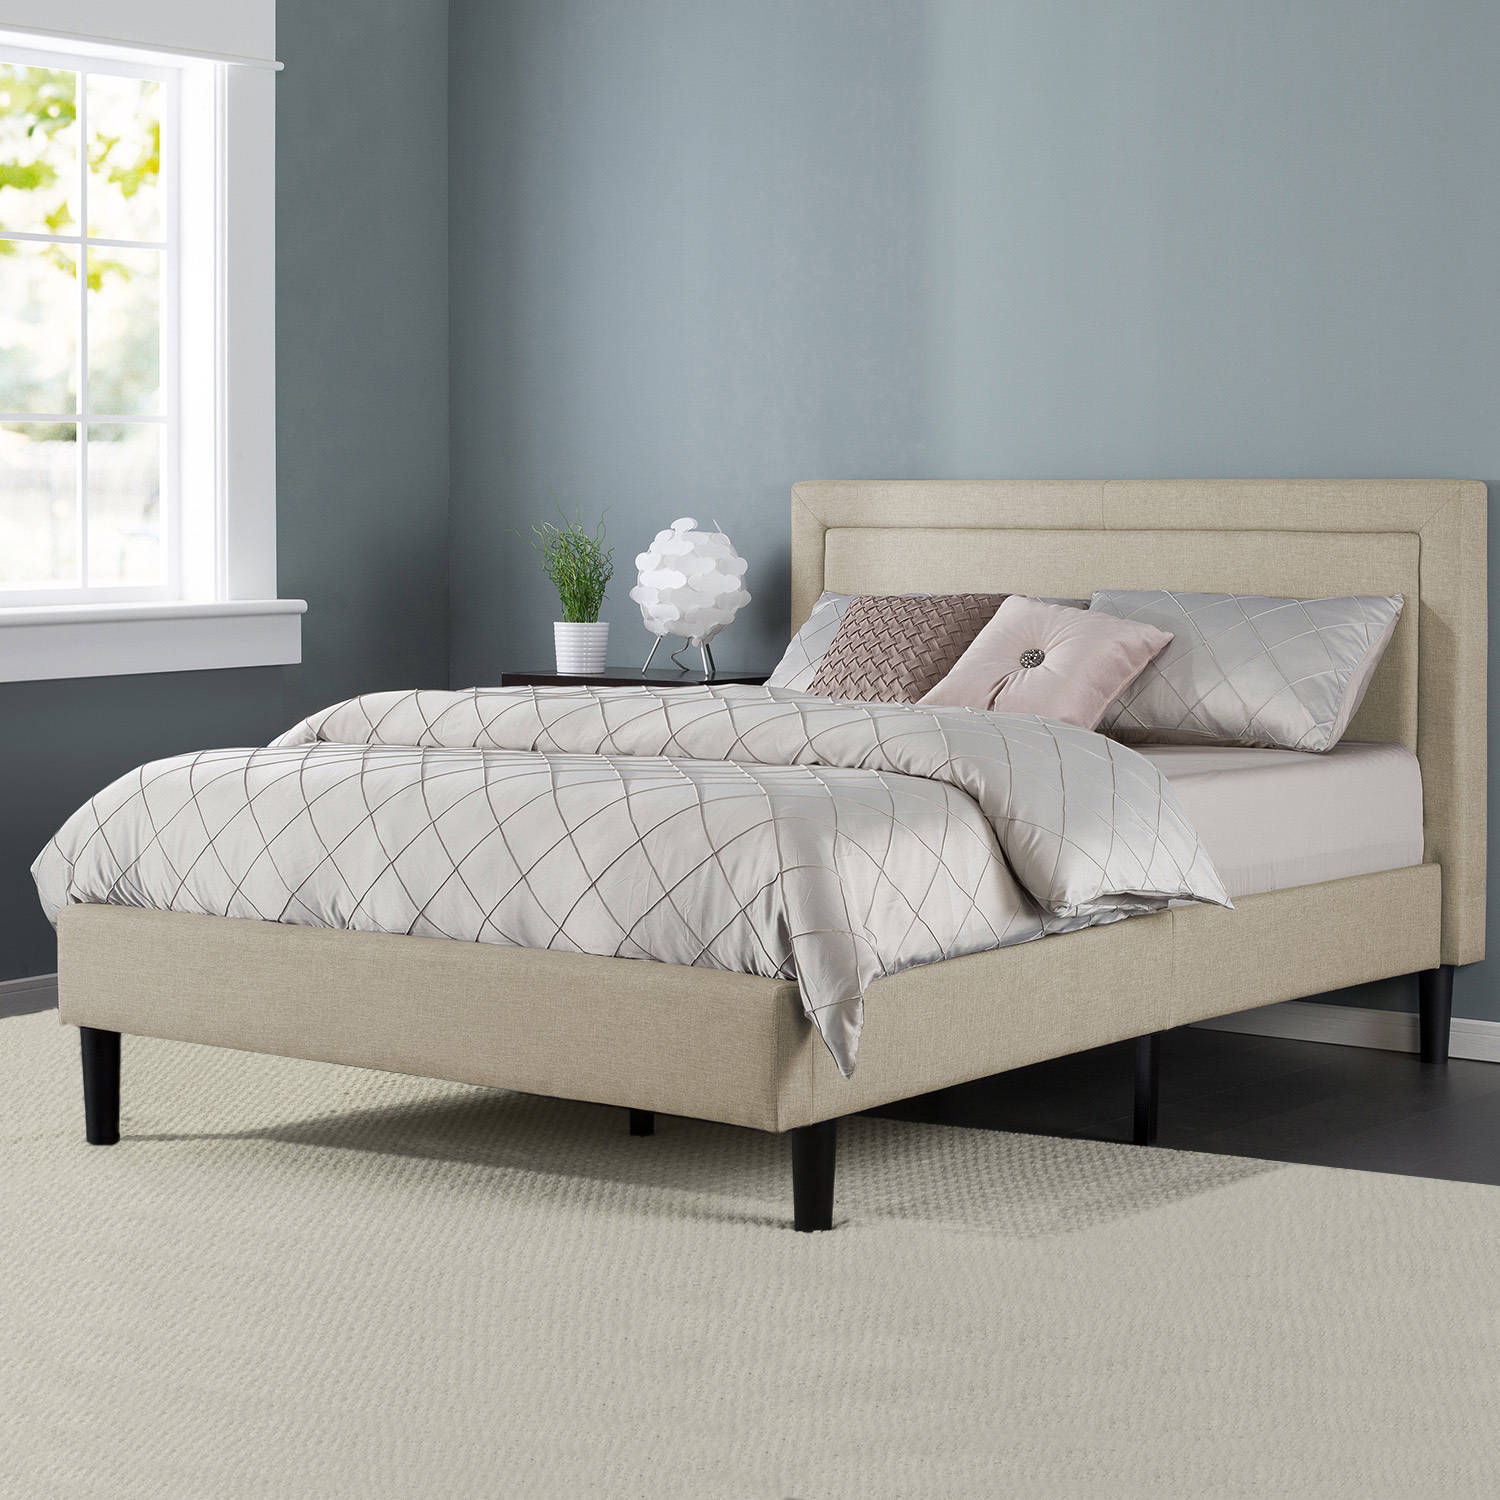 Zinus mckenzie upholstered detailed platform bed with wooden slats multiple sizes walmart com